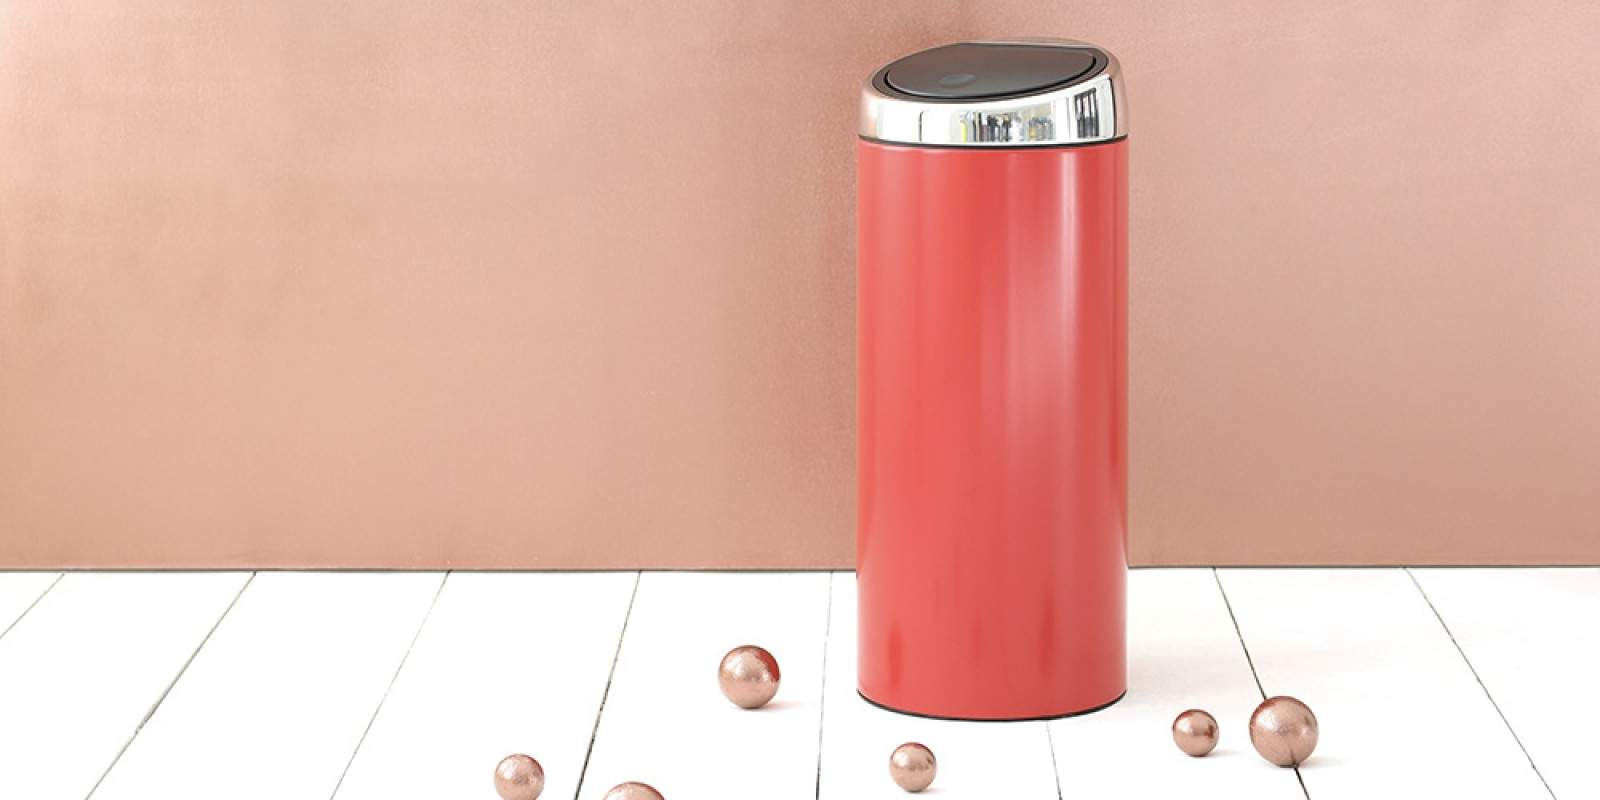 BRABANTIA-484285-Touch-Bin-Silent-30L-Passion-Red-Mood-Geometrics-01